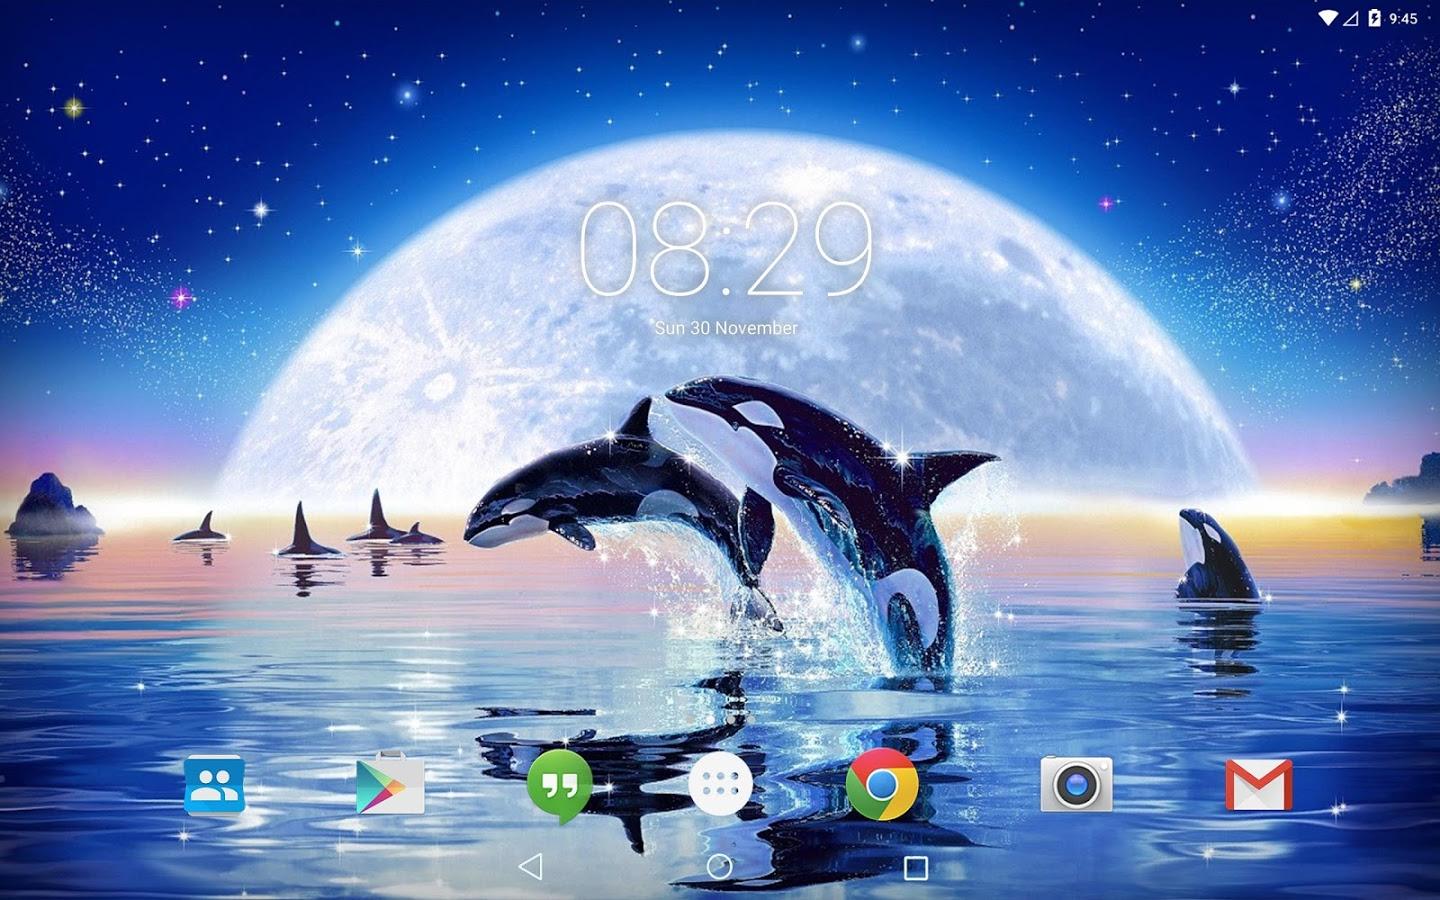 3d Fish Live Wallpaper Apk Ocean Dolphins Live Wallpaper 187 Apk Thing Android Apps